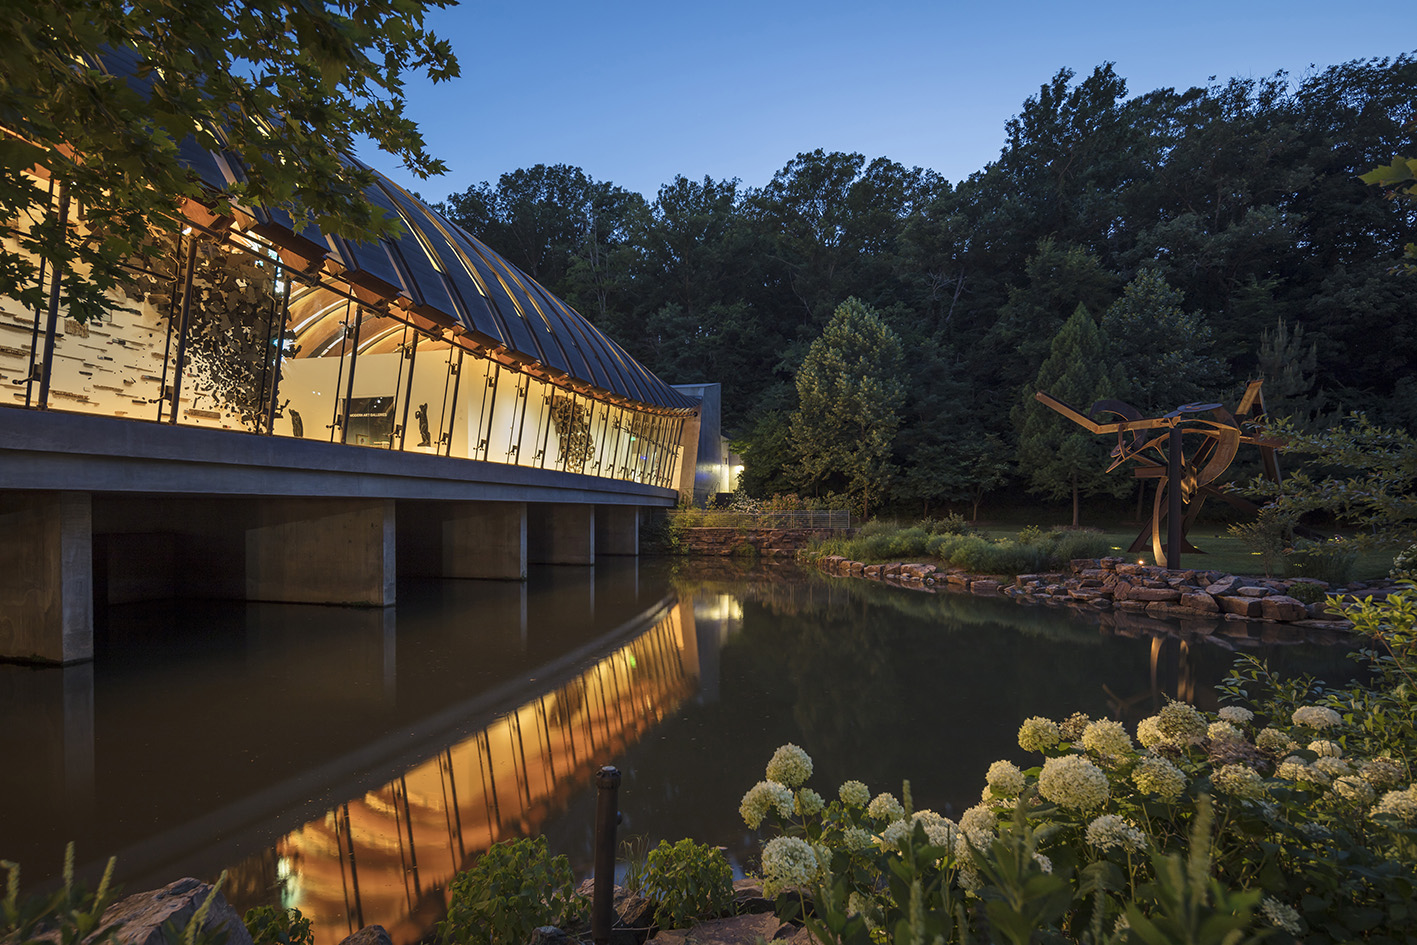 View from north lawn to gallery bridge with Lowell's Ocean, steel sculpture by Mark di Suvero.Image Courtesy of Crystal Bridges Museum of